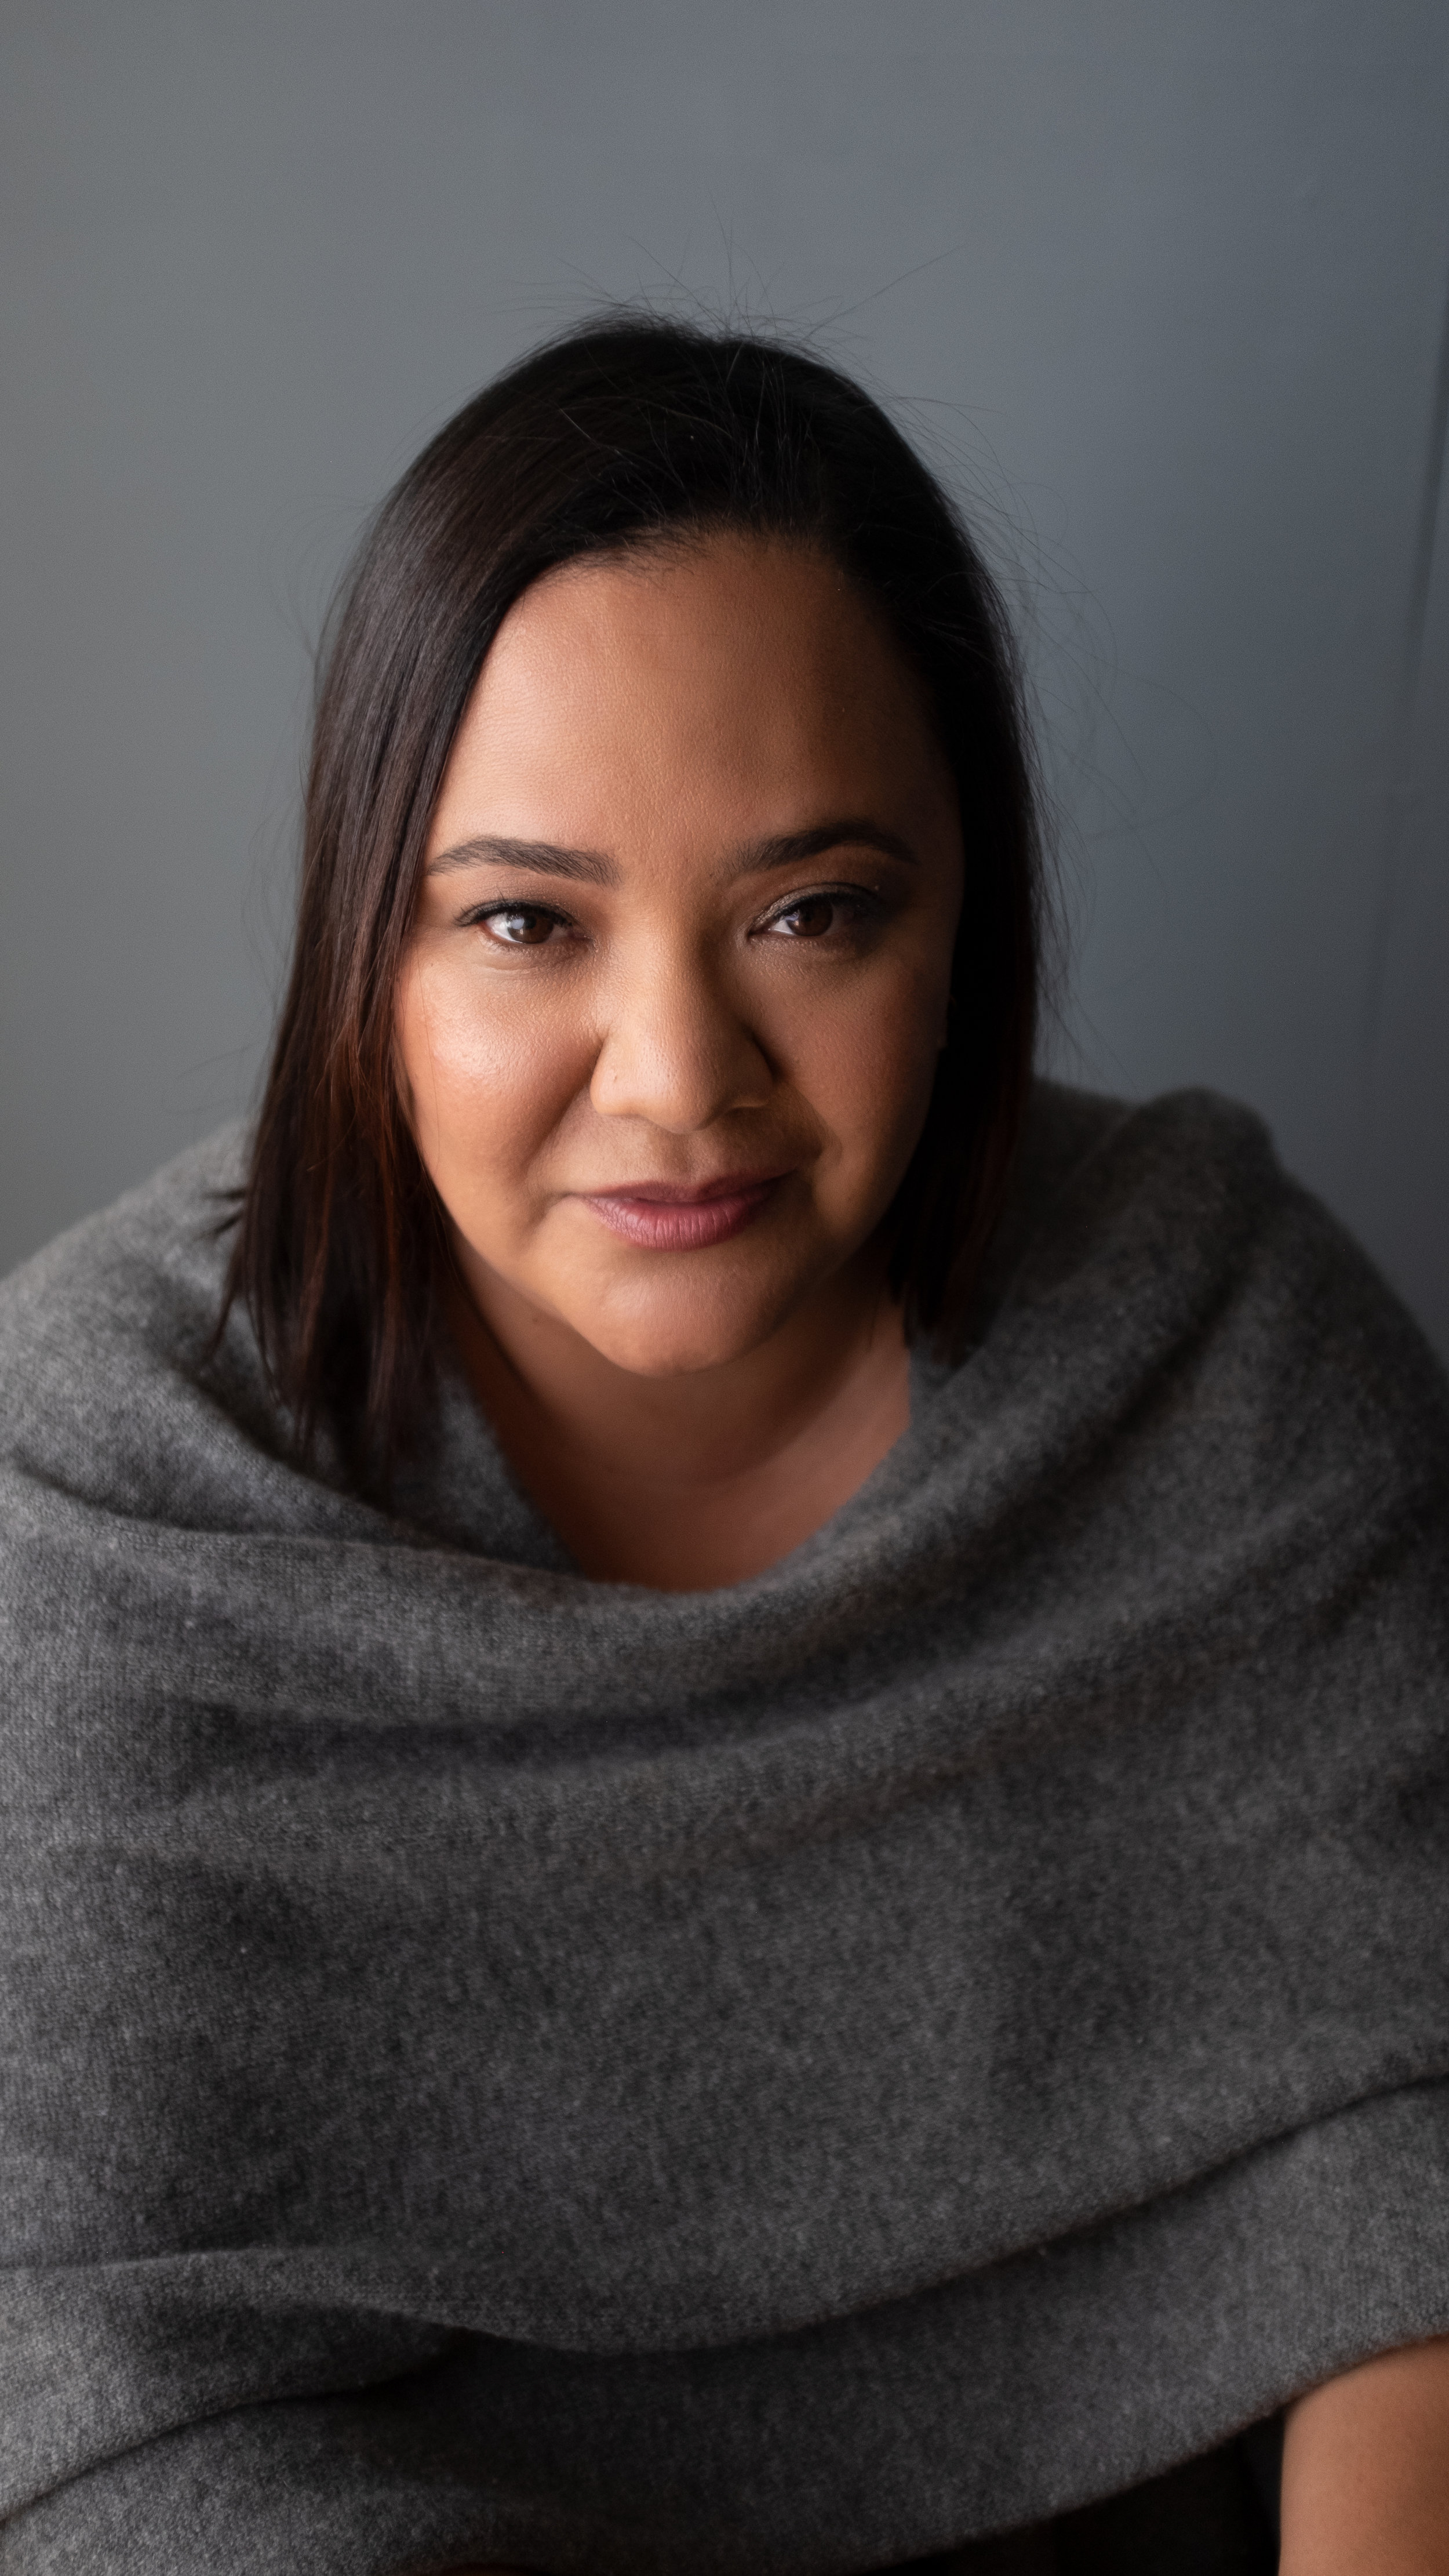 about dream hampton - dream hampton is an award-winning filmmaker and writer from Detroit. Her most recent works include the Frameline feature documentary